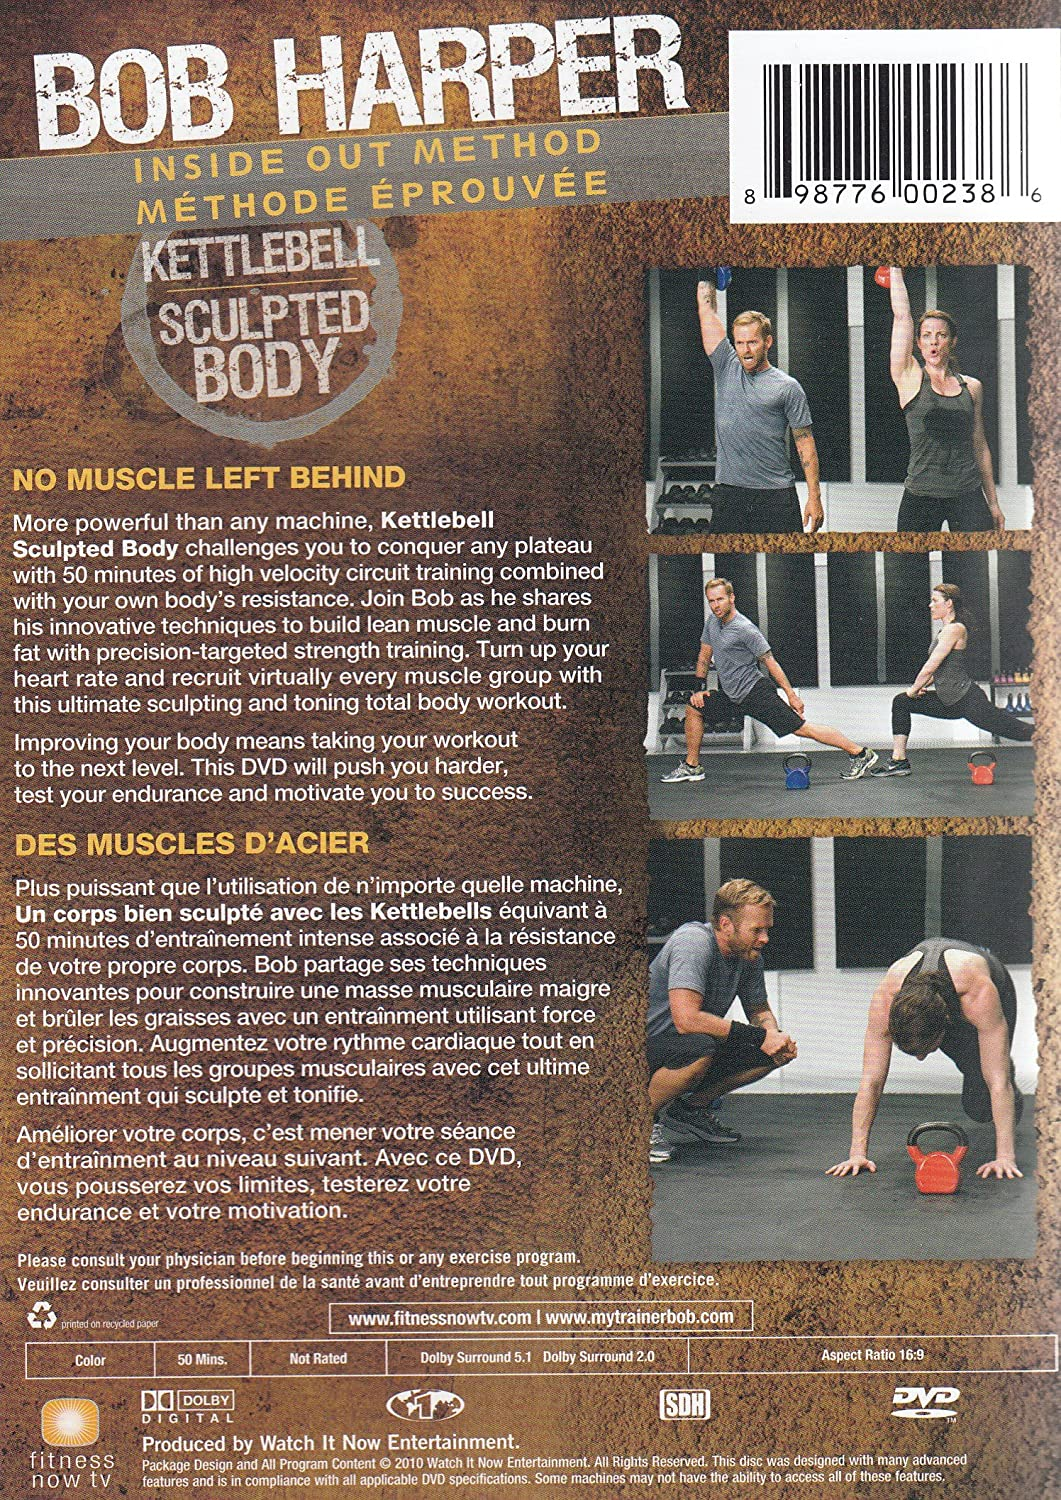 Bob Harper Kettlebell Sculpted Body Darren Control Circuit Training Course Length Is Customizable Based On Your Capik Movies Tv